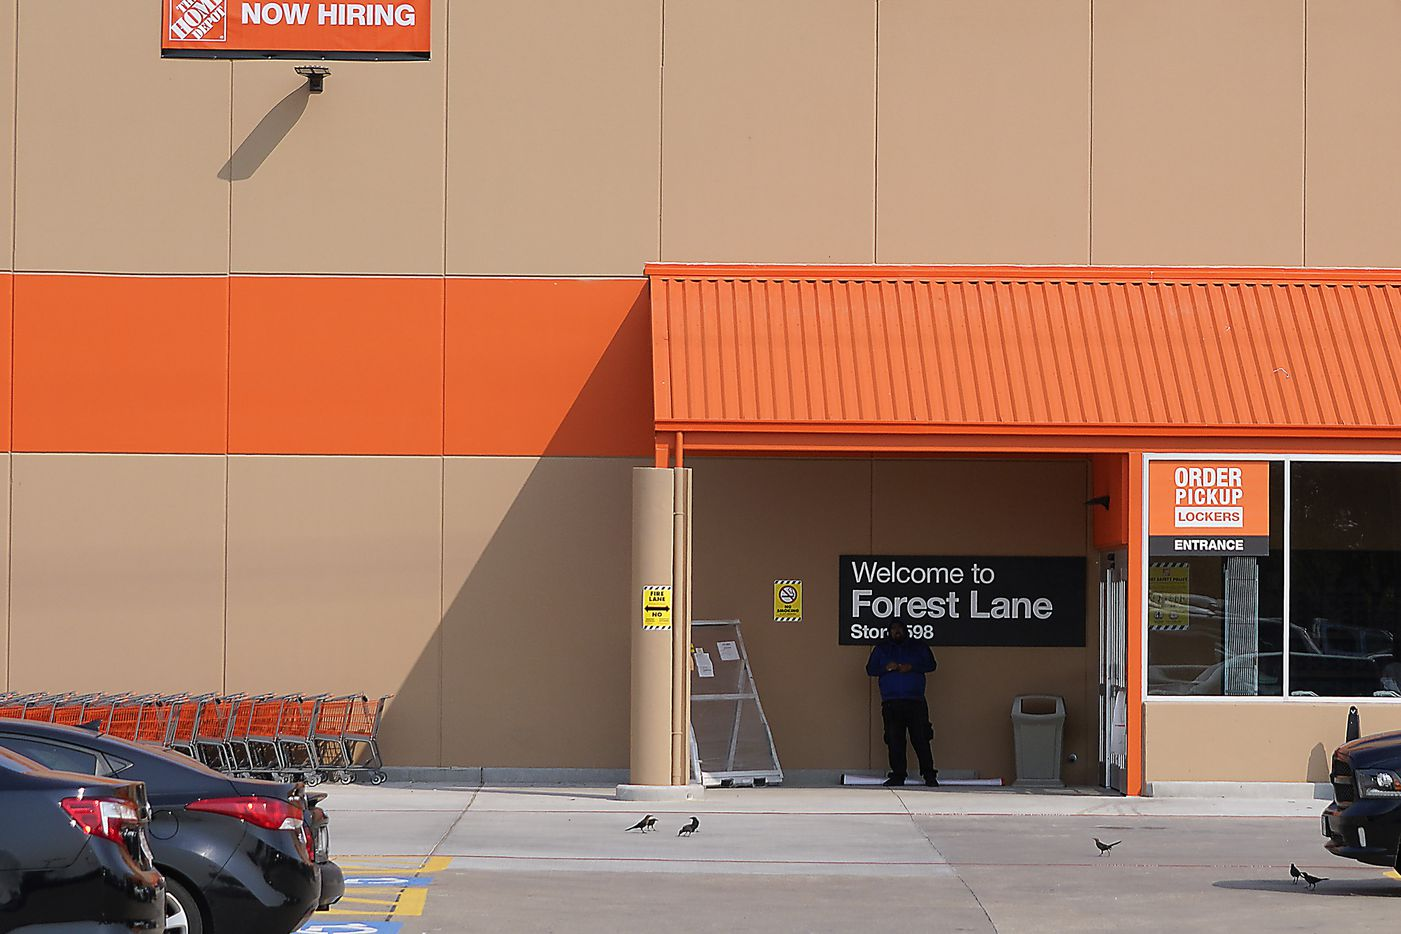 Home Depot store at Forest Lane and N. Central Expressway on Friday, Oct. 2, 2020, in Dallas. (Smiley N. Pool/The Dallas Morning News)